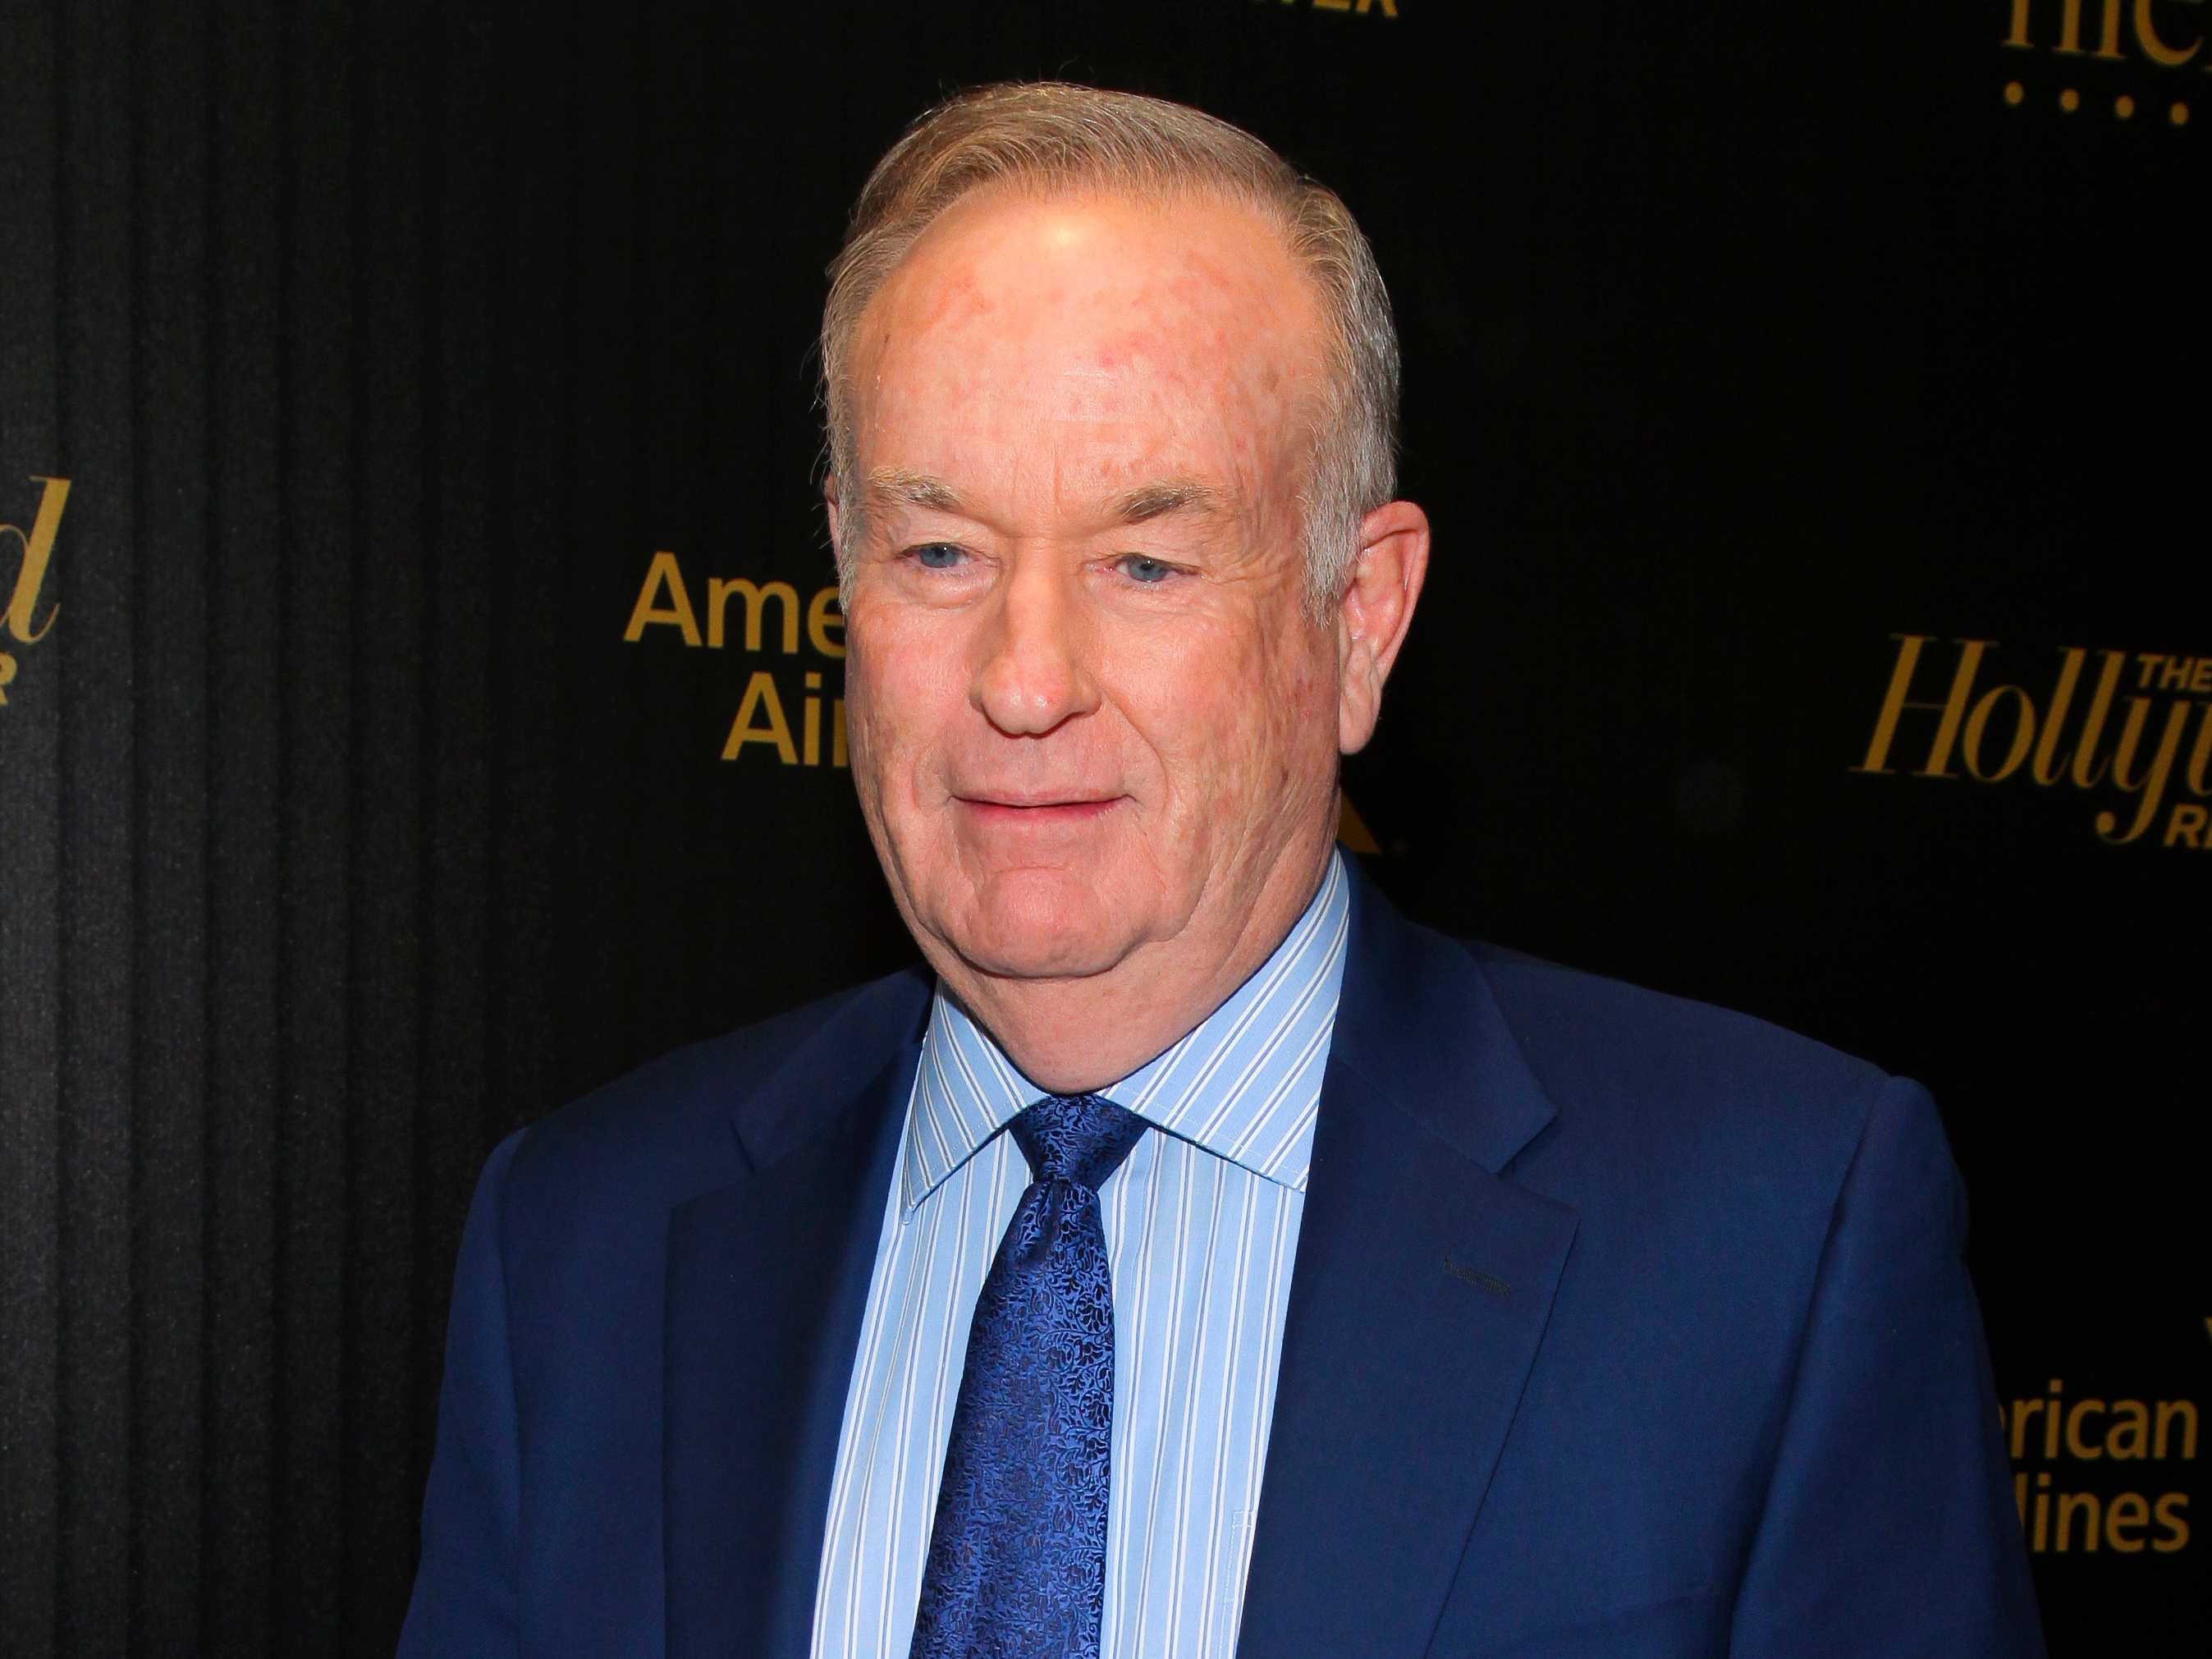 Next Bill O'Reilly Book Coming in September